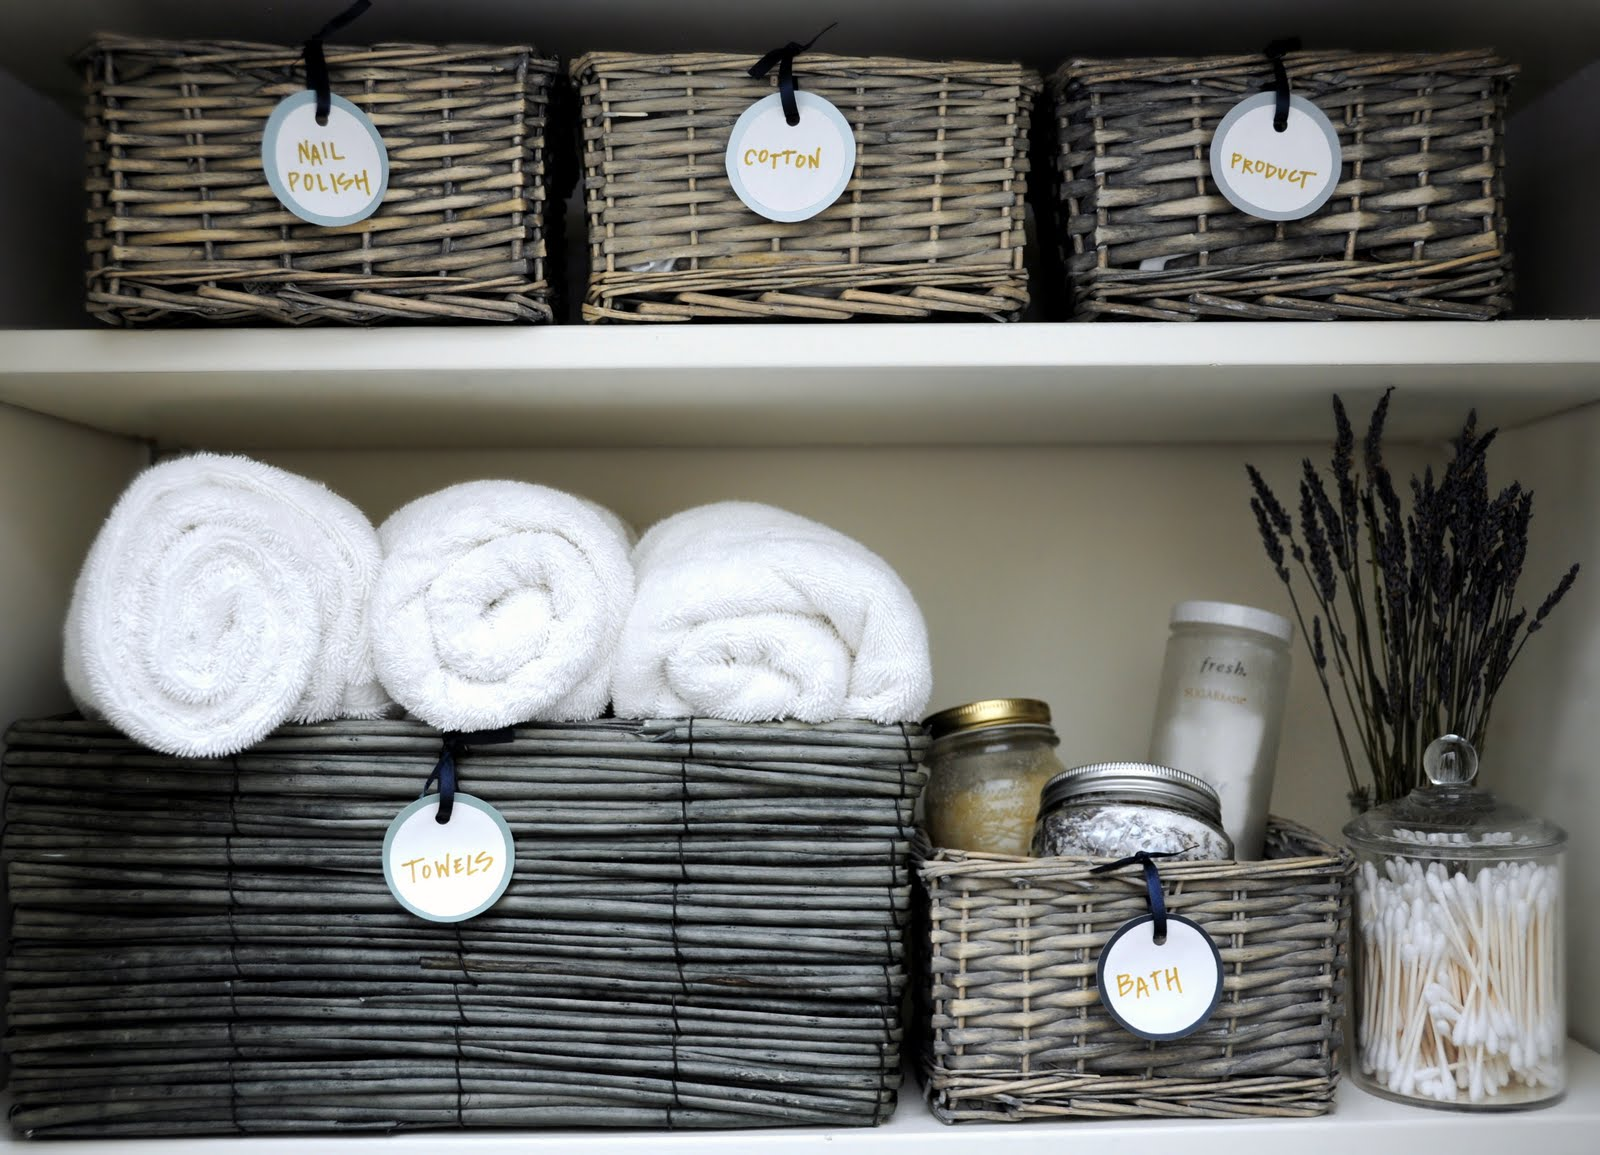 Bathroom Linen Closet Ideas How To Organize Your Linen Closet 11 Super Simple Steps